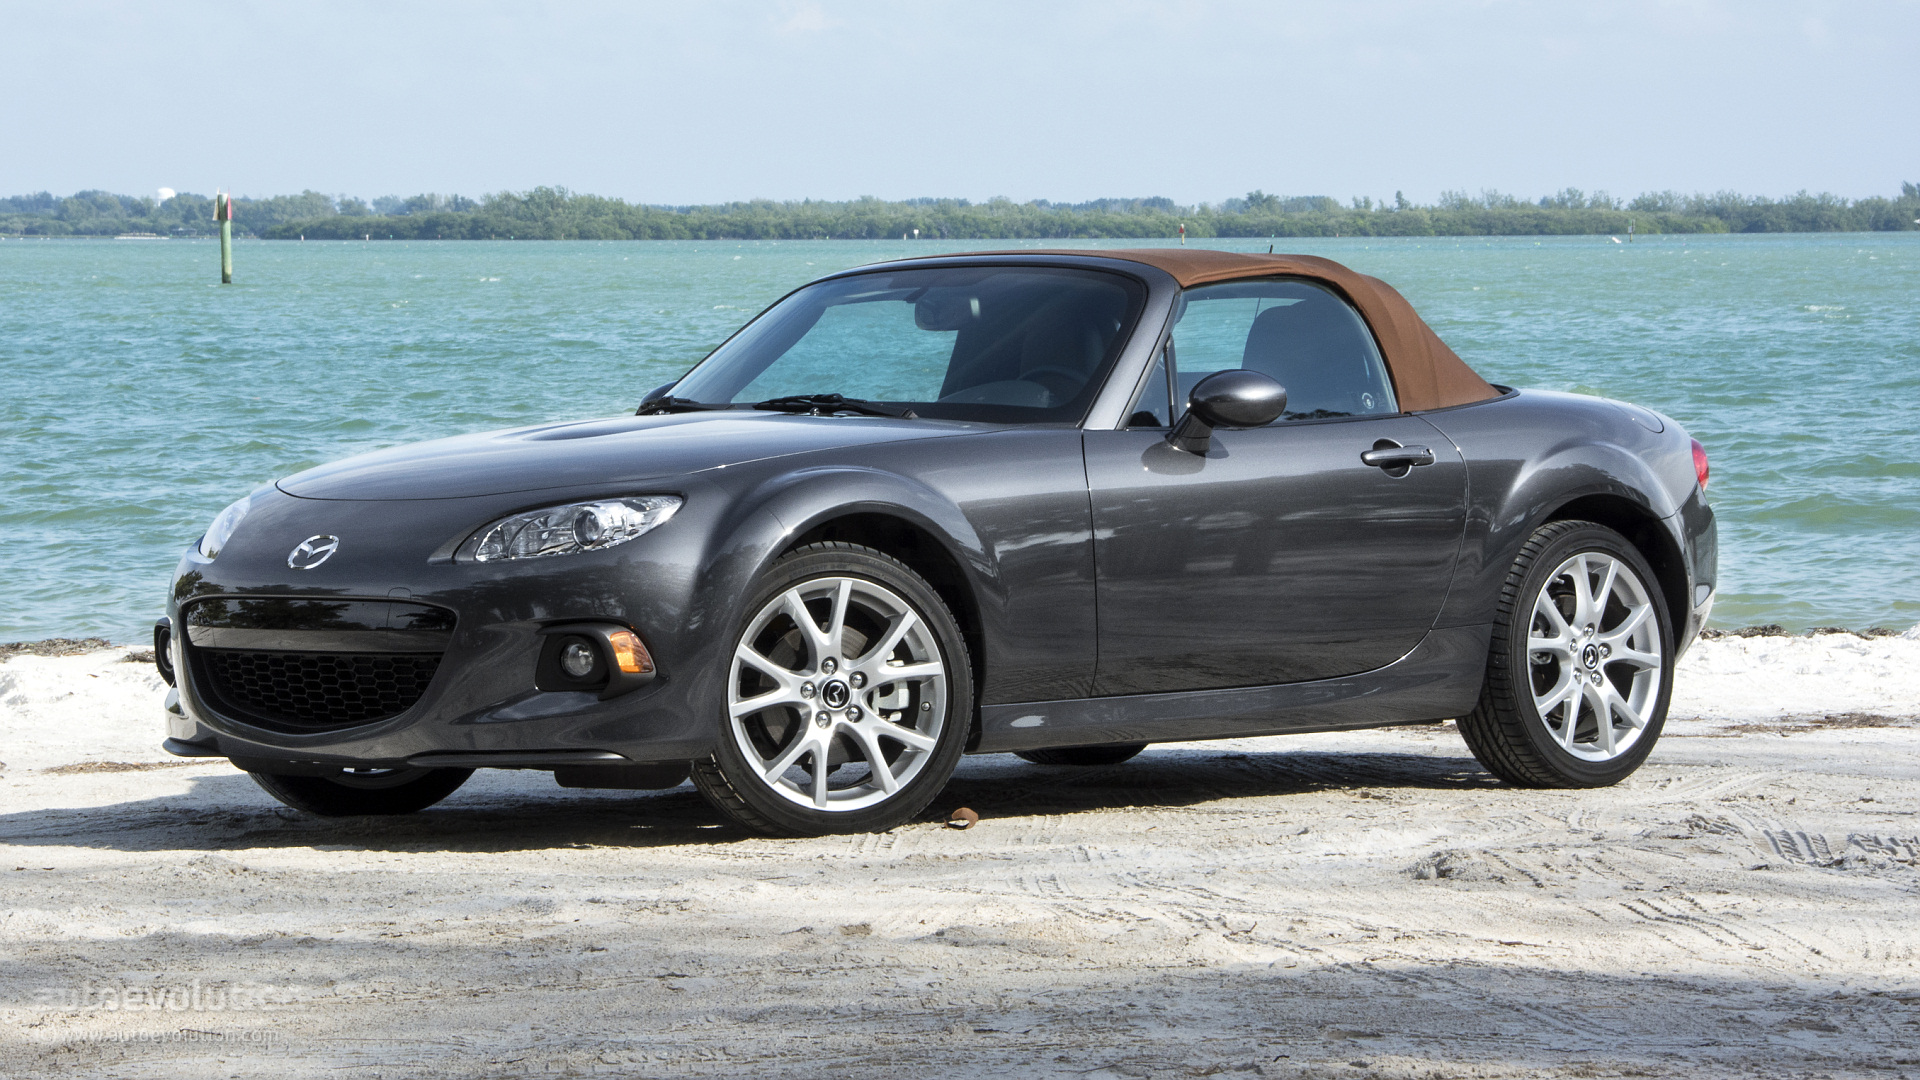 2015 mazda mx 5 miata hd wallpapers valediction. Black Bedroom Furniture Sets. Home Design Ideas